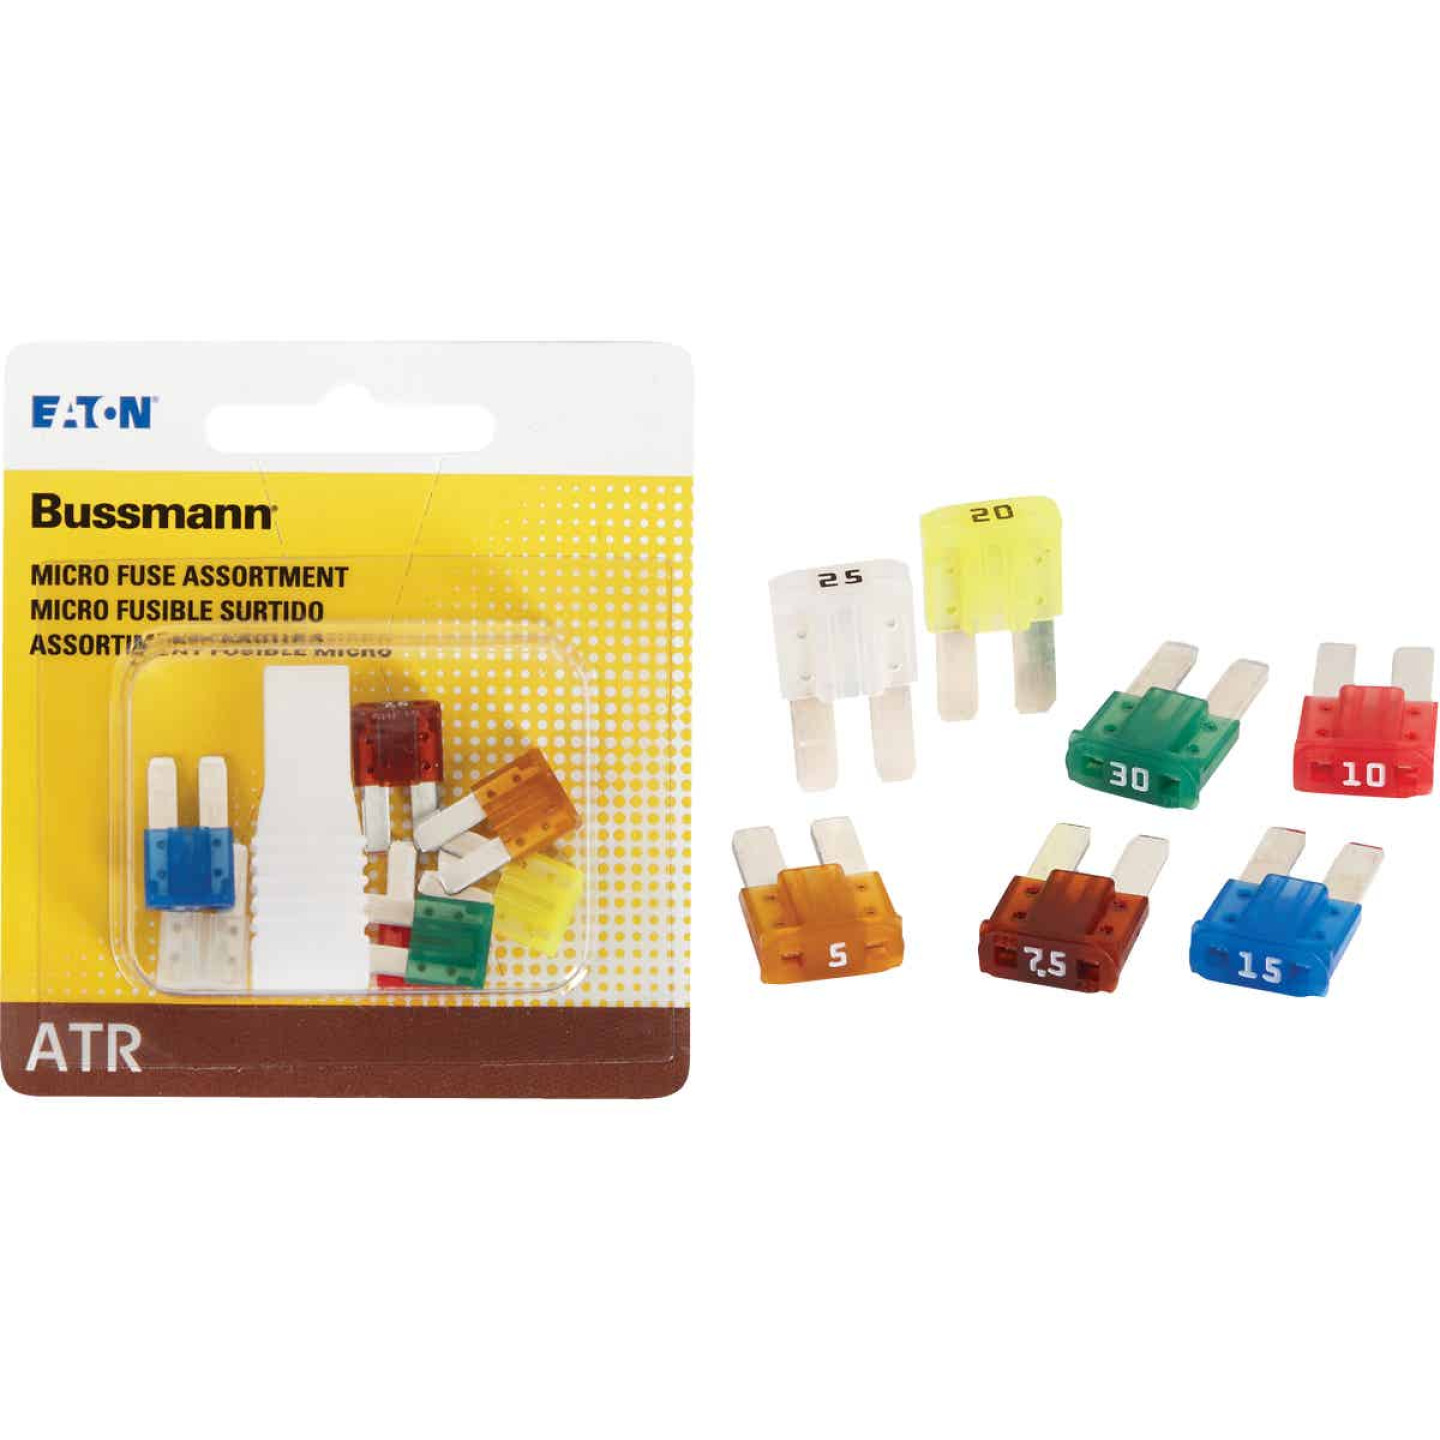 Bussmann ATR (Micro II) Fuse Assortment with Fuse Puller (7-Piece) Image 1